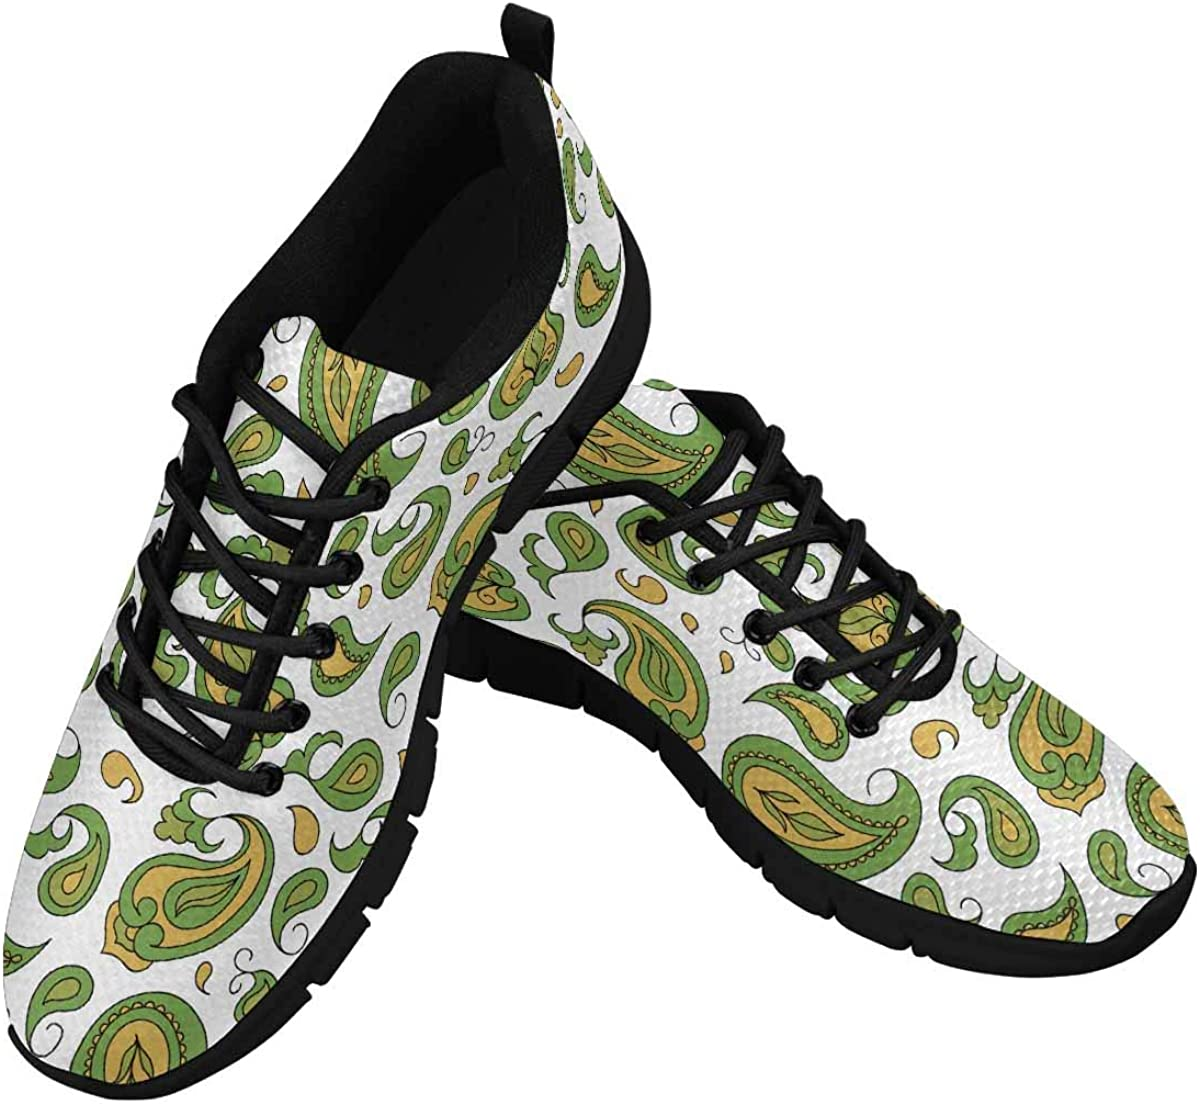 InterestPrint Paisley Pattern Traditional Ethnic Women's Athletic Mesh Breathable Casual Sneakers Fashion Tennis Shoes